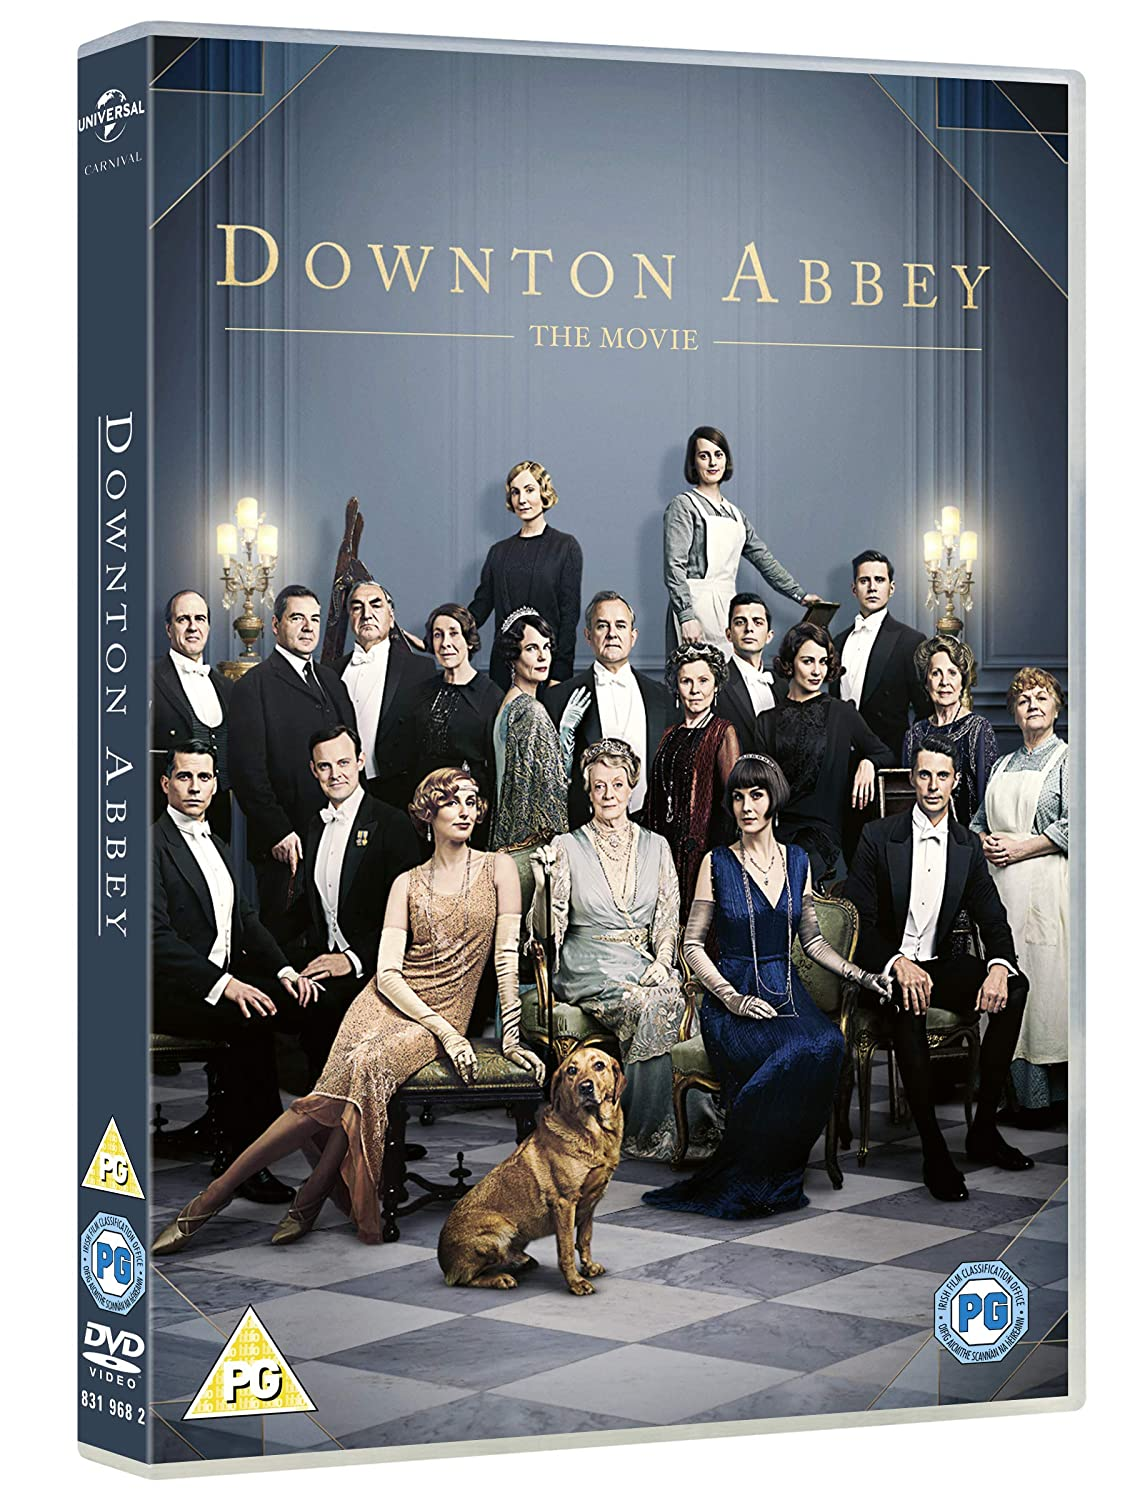 New Dvd Releases January 2020.Downton Abbey The Movie Dvd 2019 Amazon Co Uk Dvd